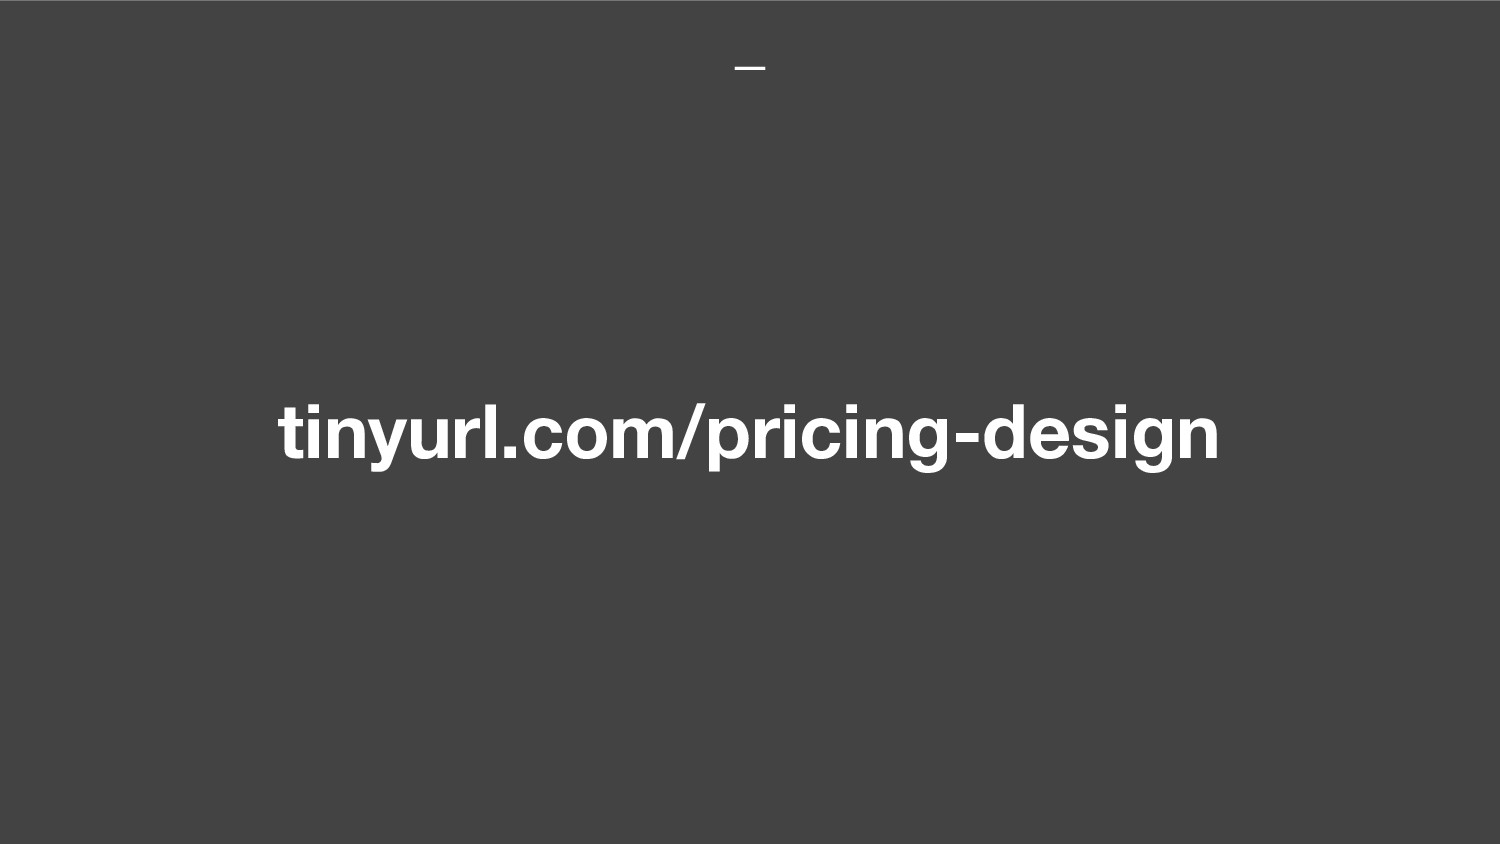 tinyurl.com/pricing-design